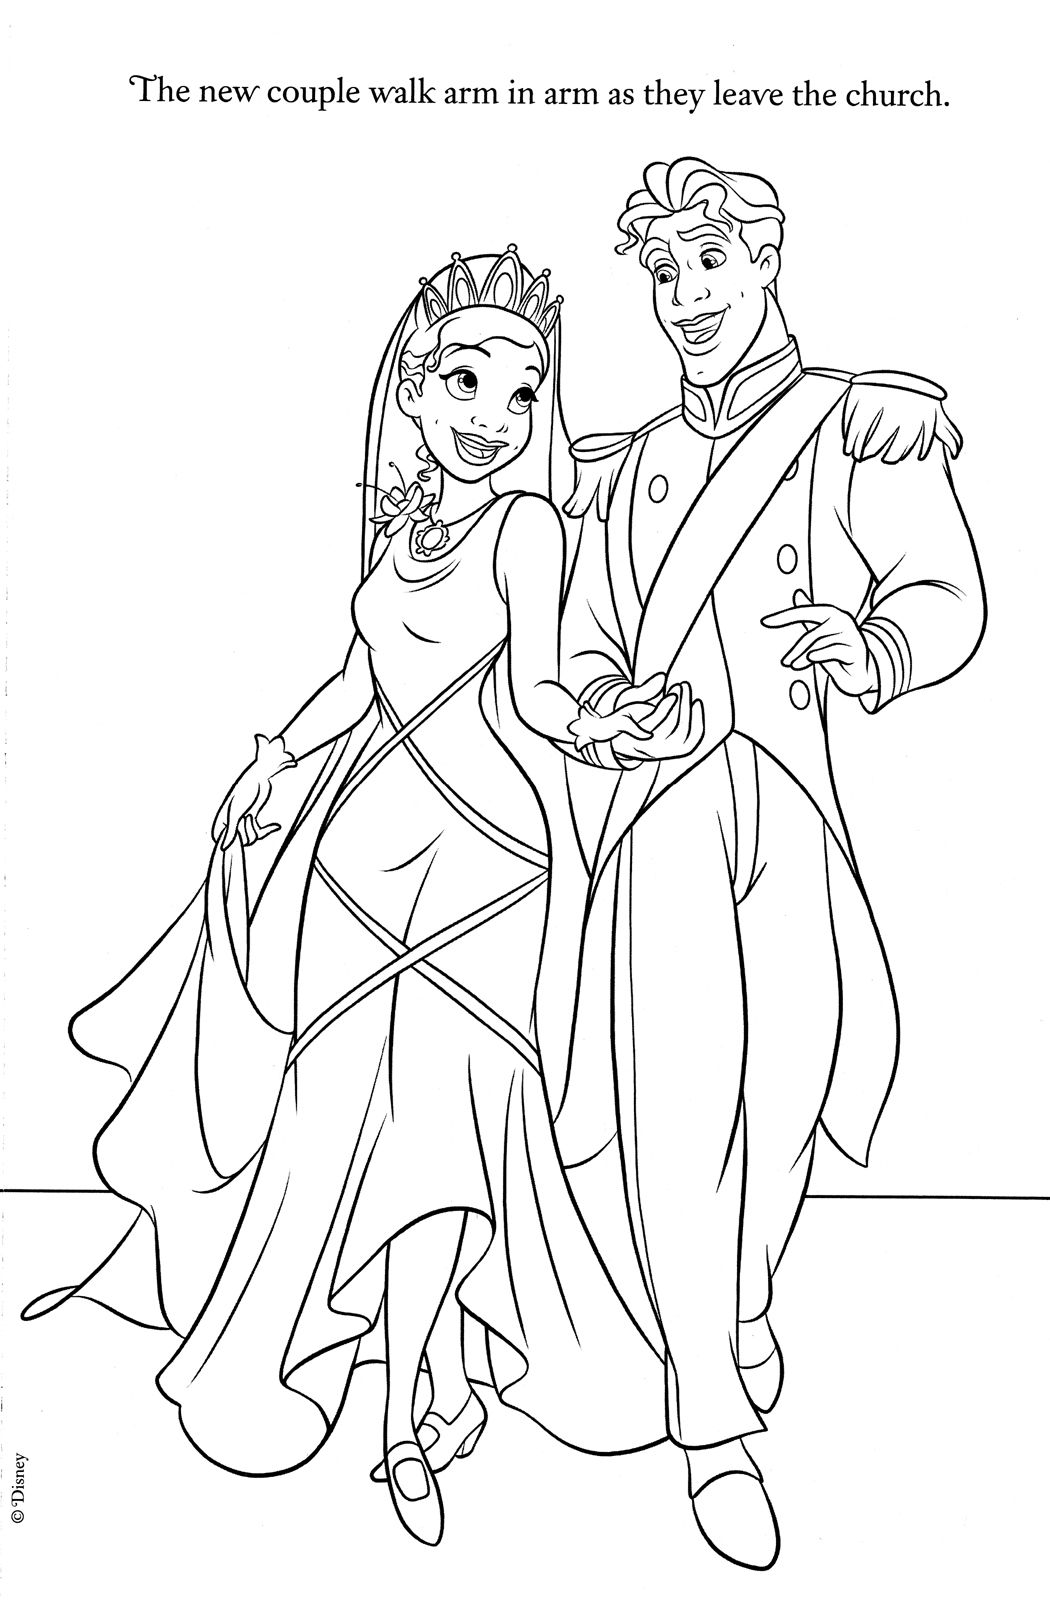 Tiana and Naveen Coloring Pages | | (((( Tiana )))) | Pinterest ...